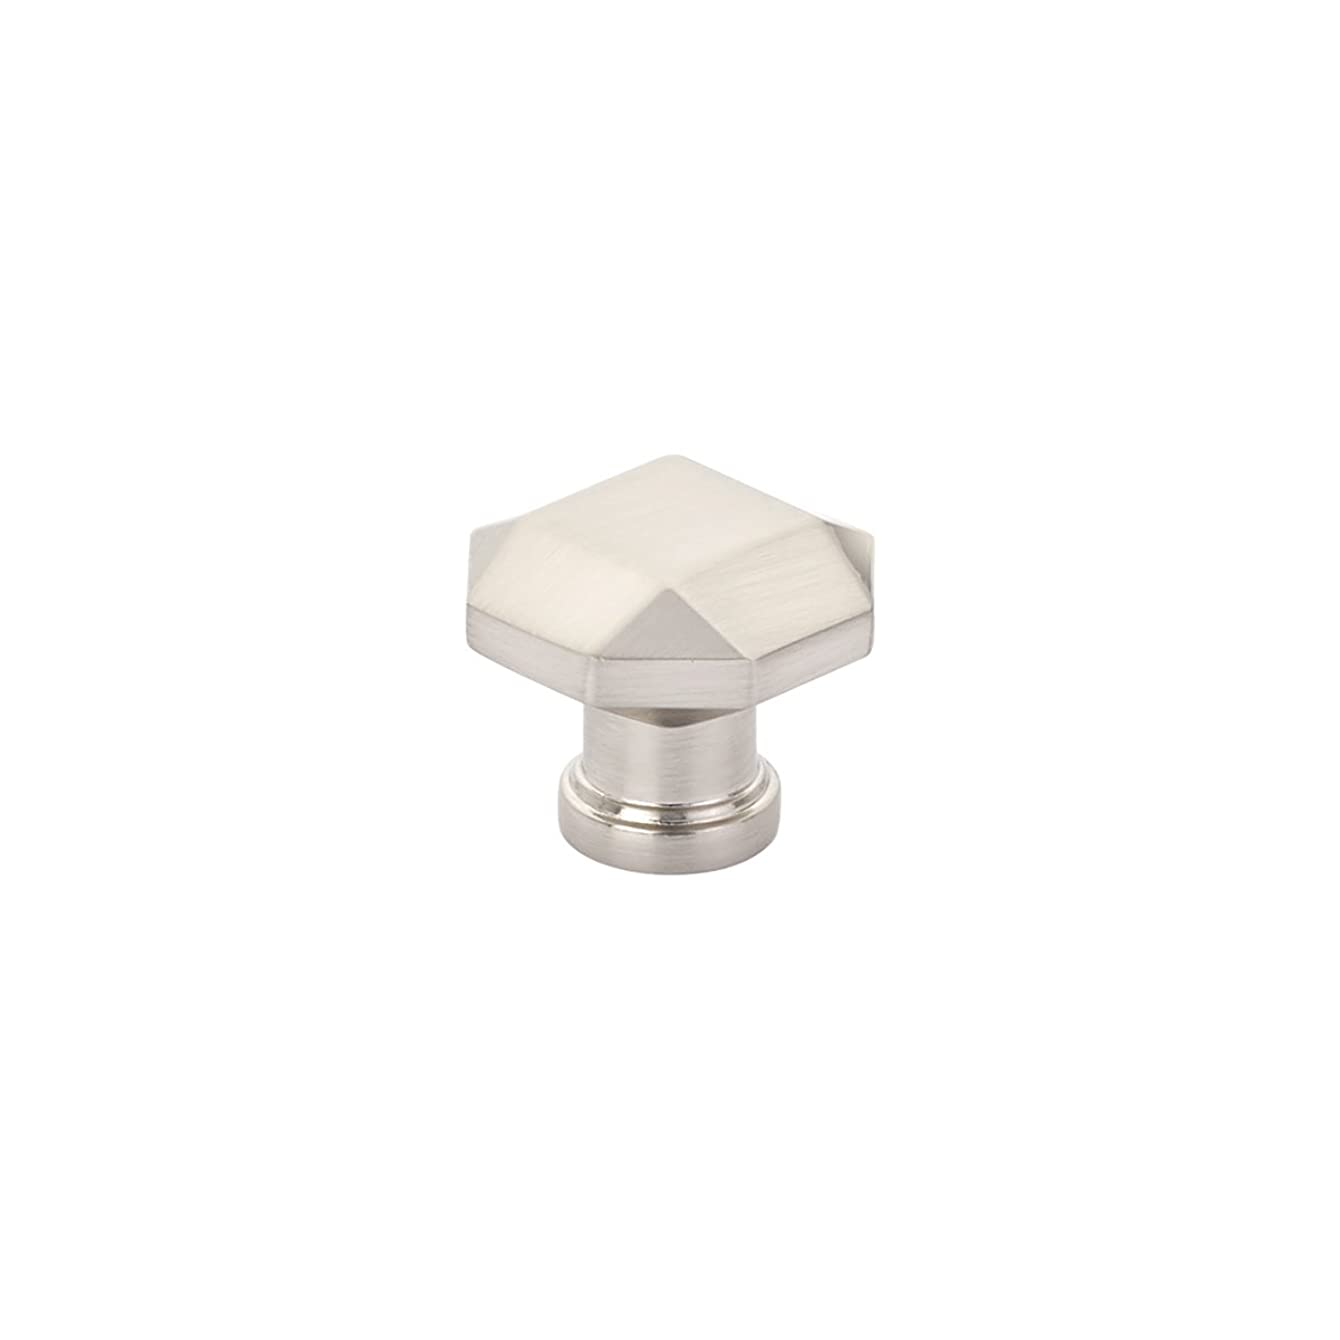 Schaub Menlo Park Collection 1-1/4 in. (32mm) Faceted Knob, Brushed Nickel - 531-BN